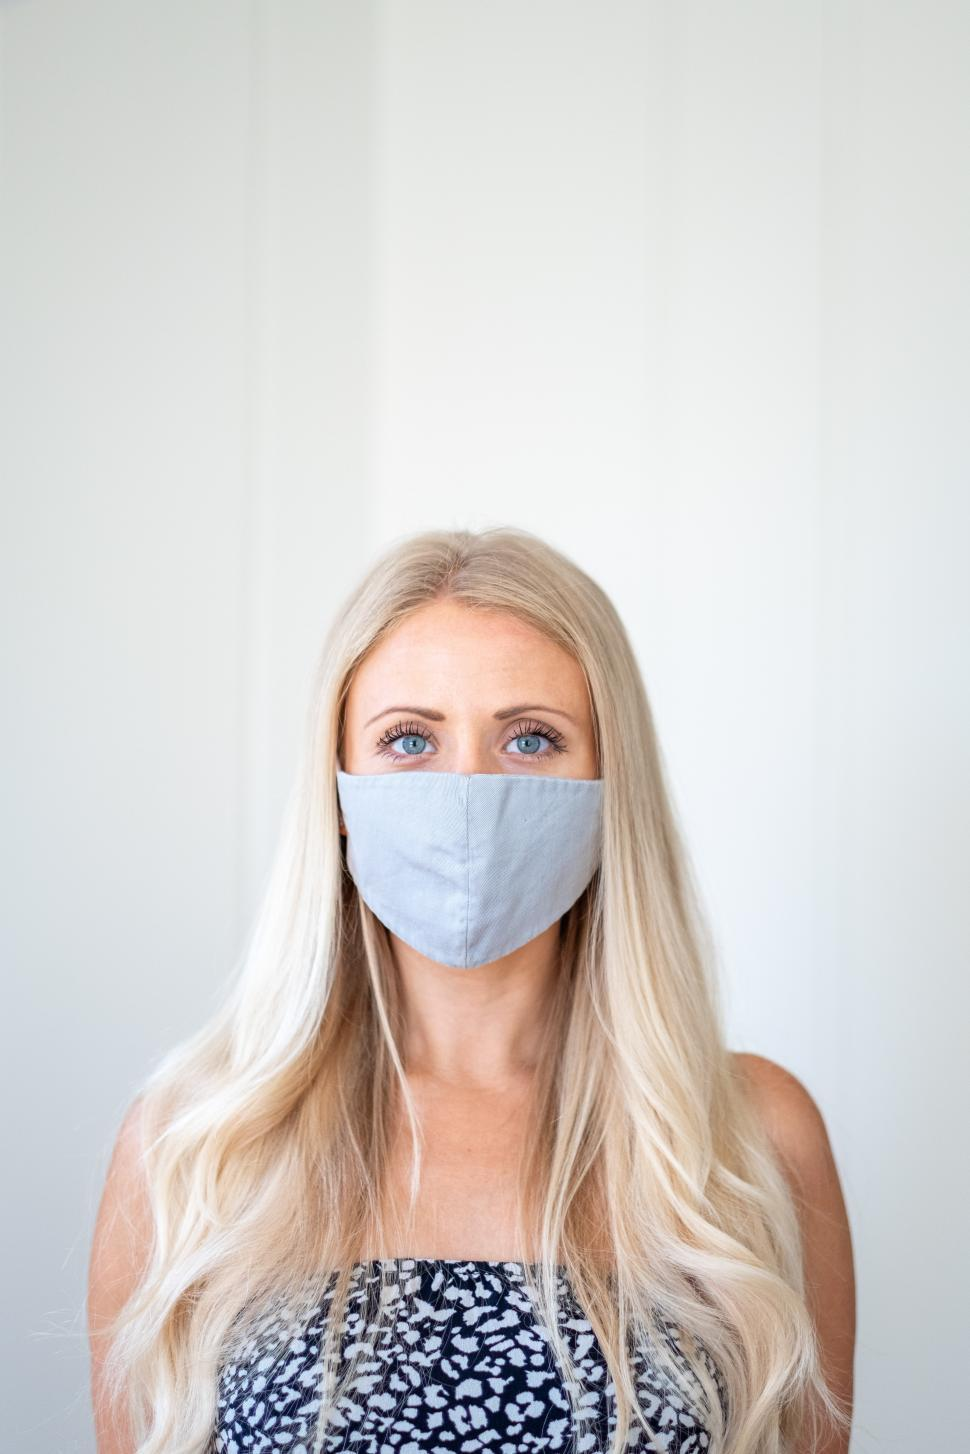 Download Free Stock Photo of Woman with face mask - Corona Protection